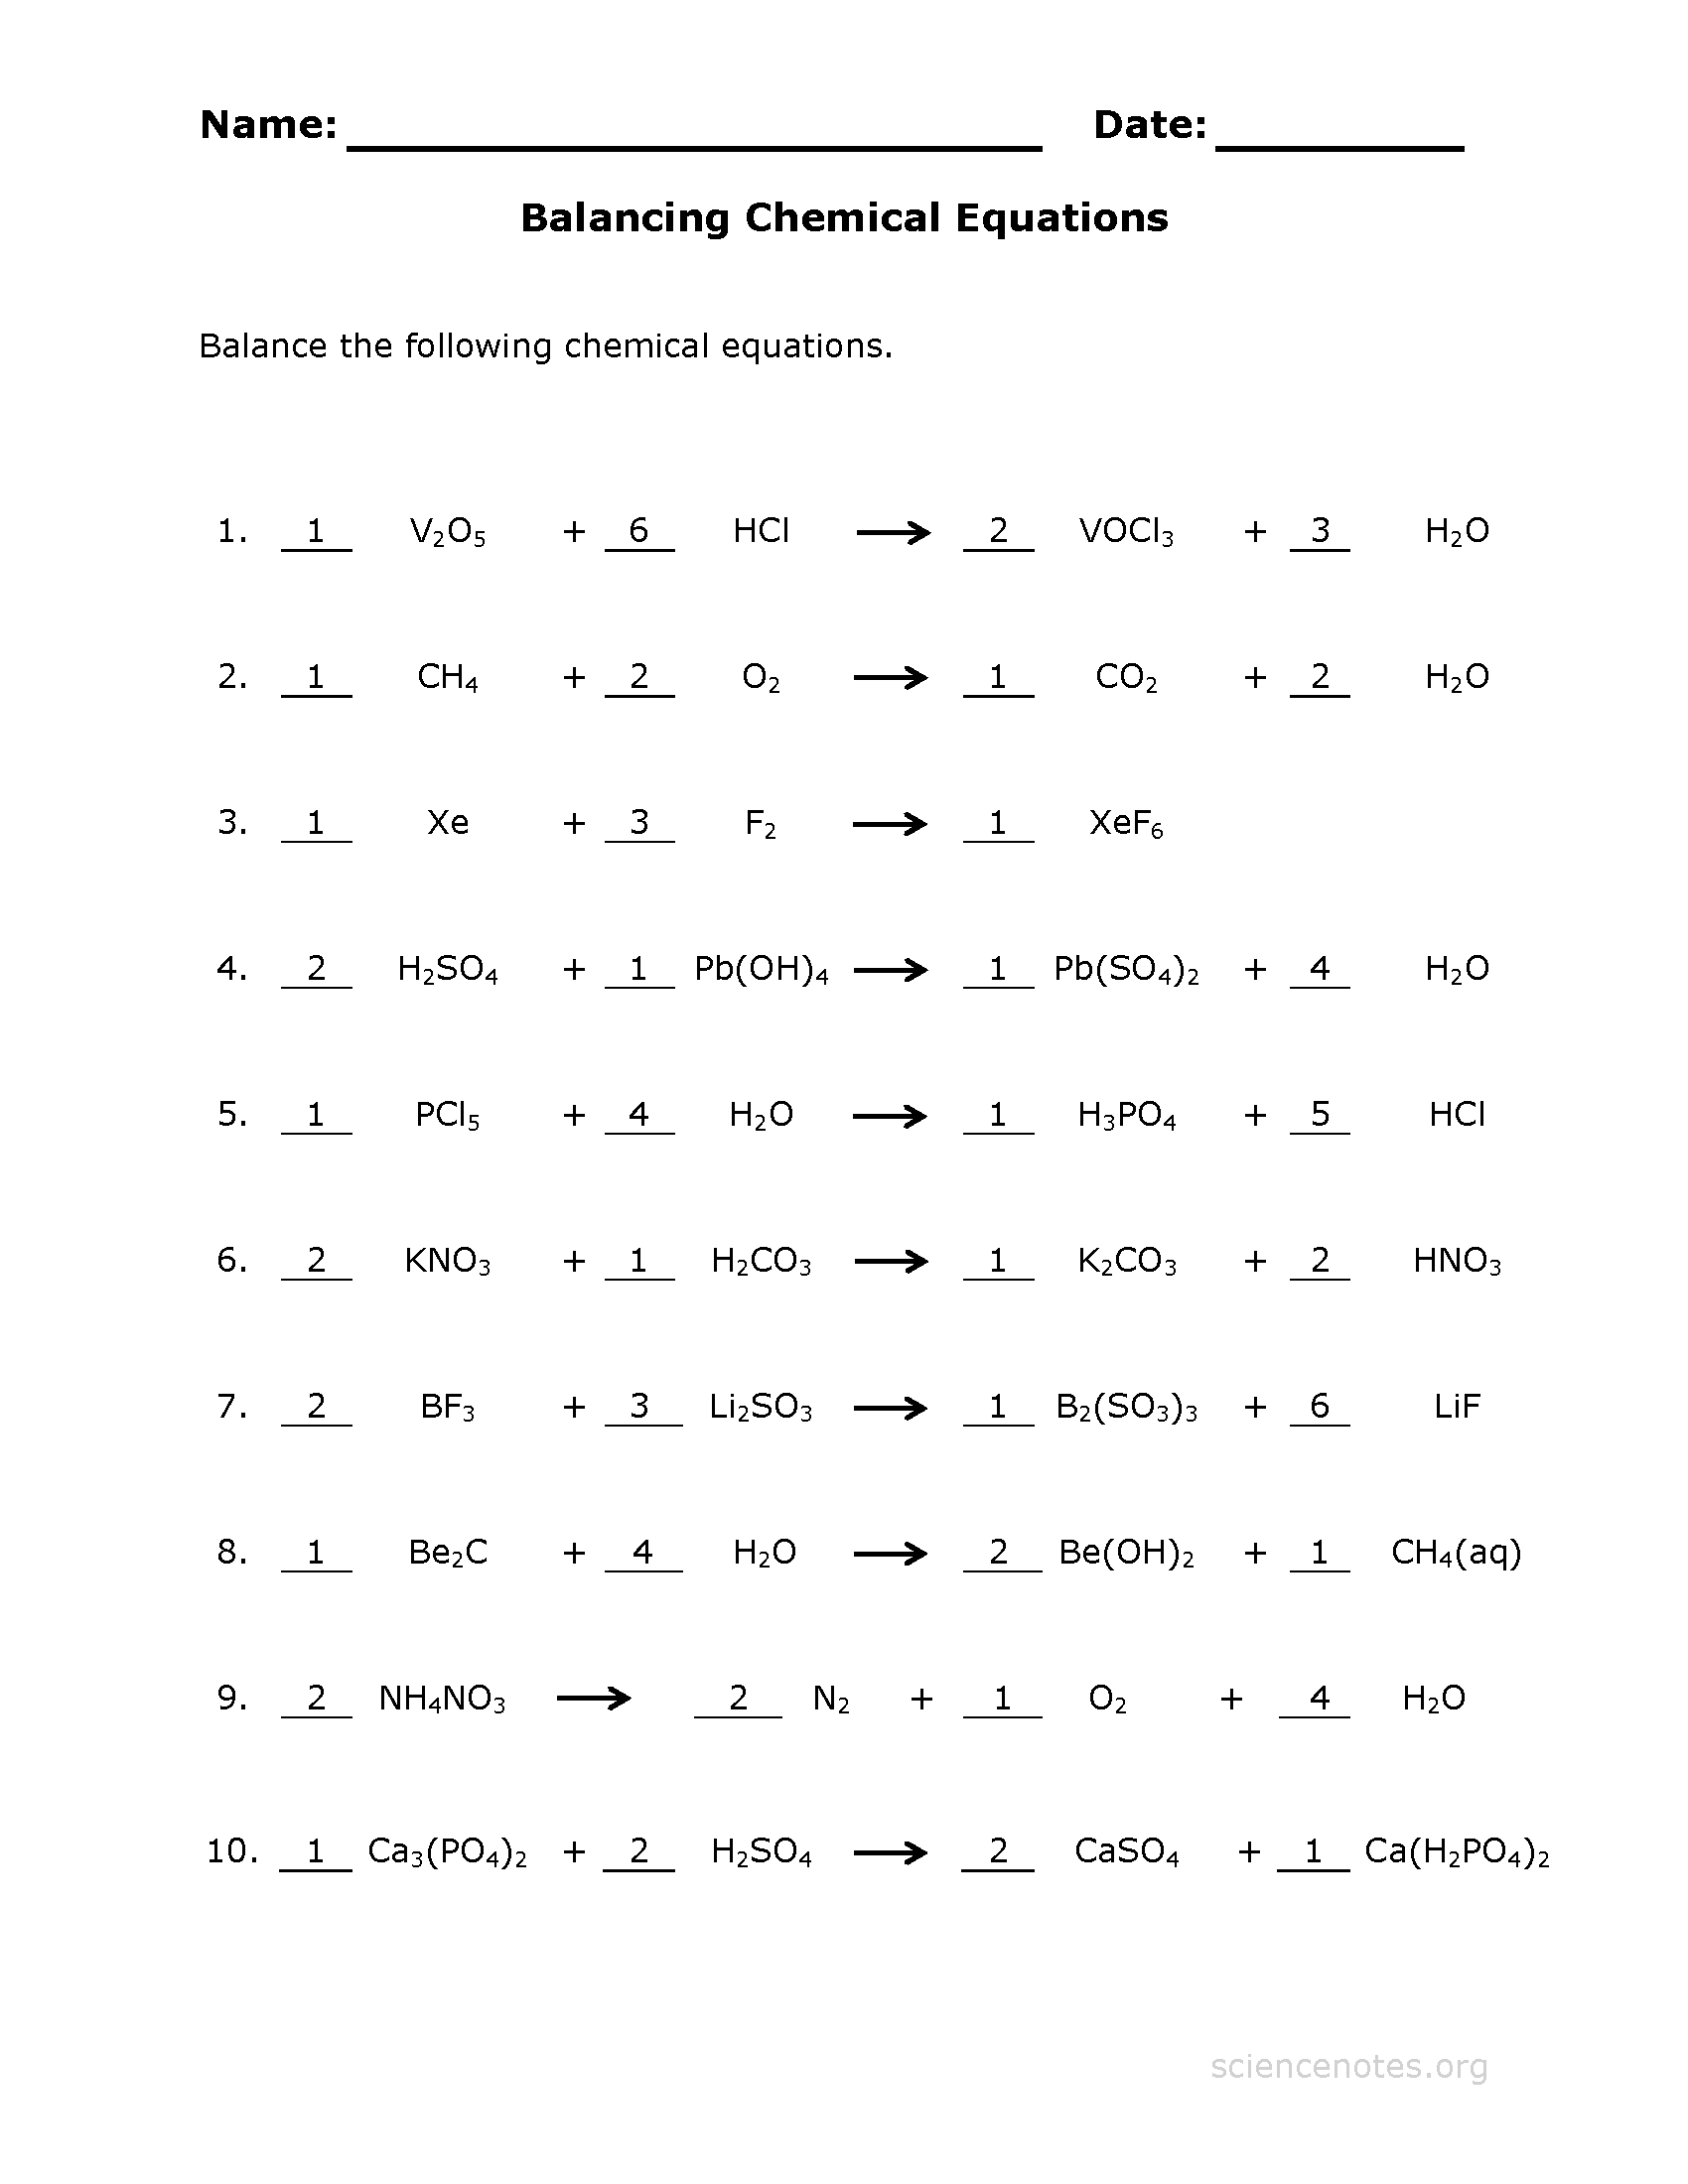 Balance Chemical Equations Worksheet 3 Answer Key - Science Notes ...